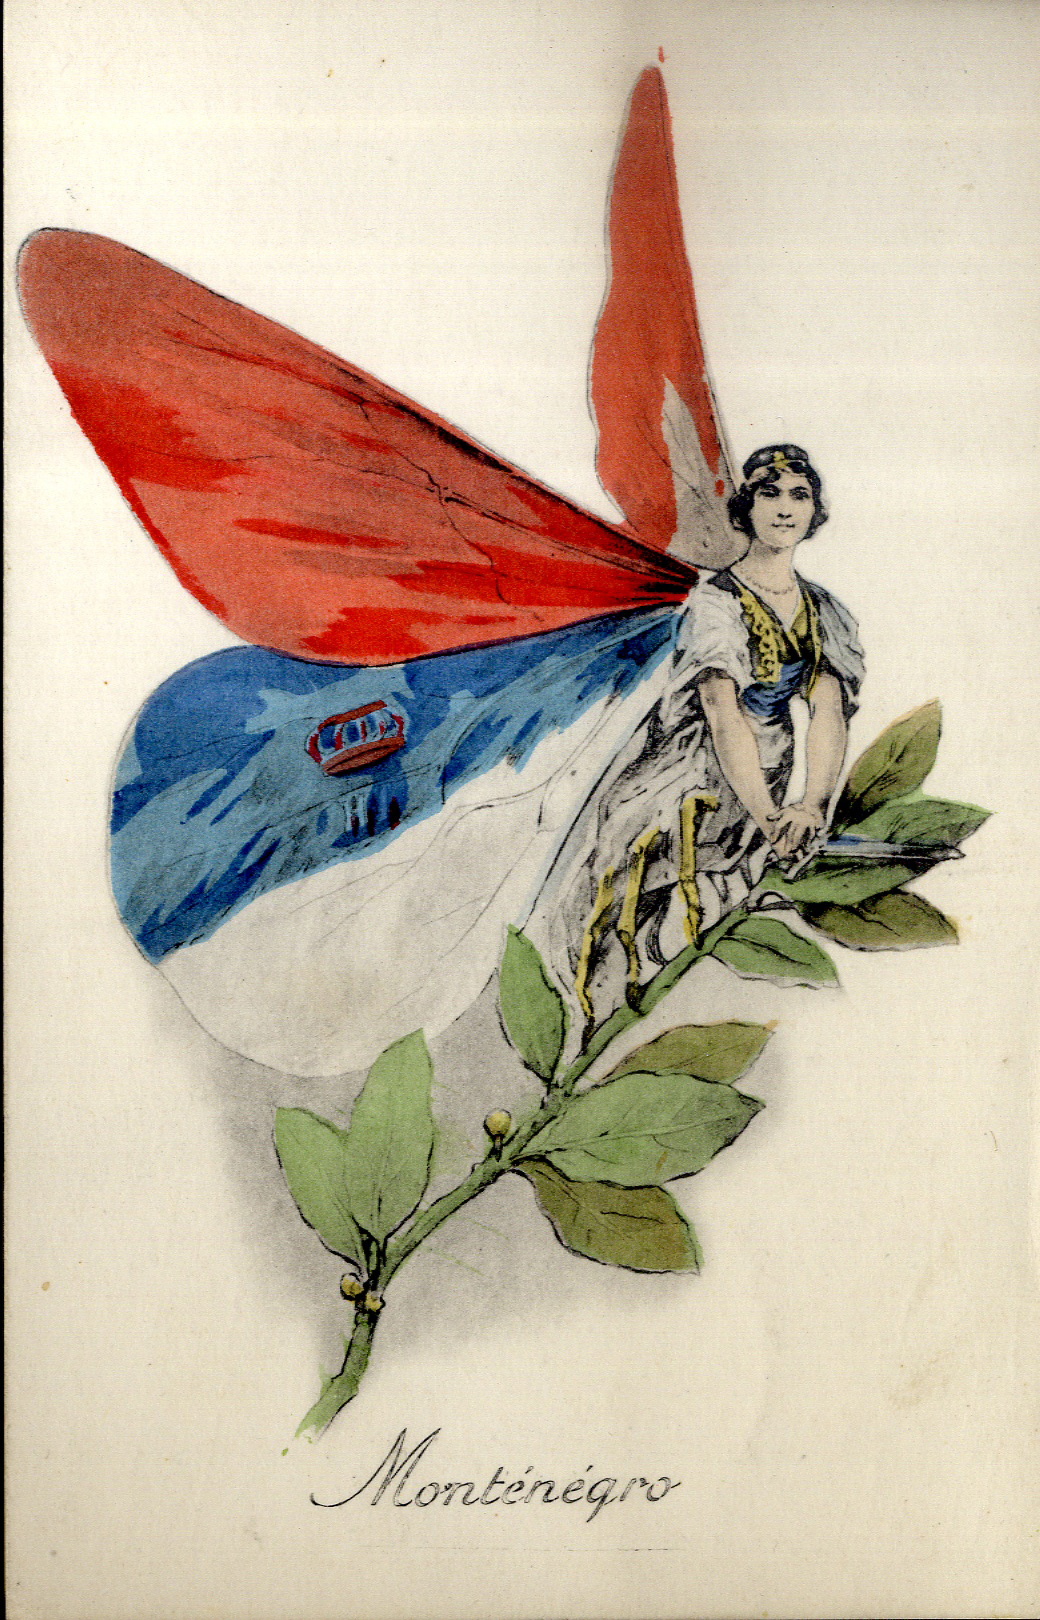 One of a set of French propaganda postcards in which the combatant countries are depicted as butterflies (for the Allies) and other insects (for the Central Powers).